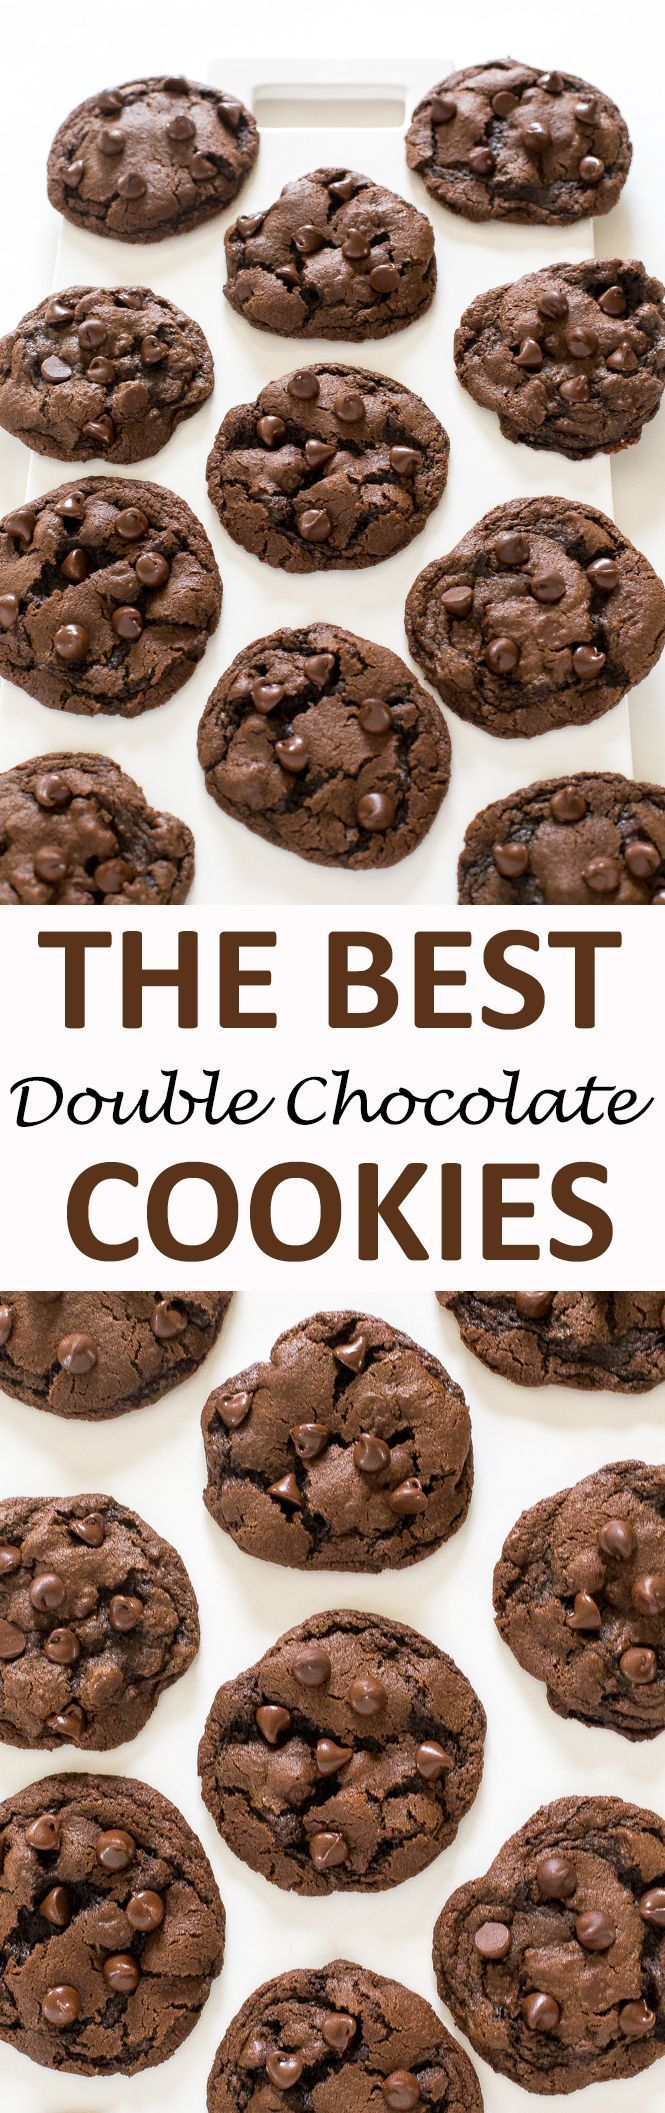 Best 20+ Cocoa powder recipes ideas on Pinterest | Cocoa butter ...